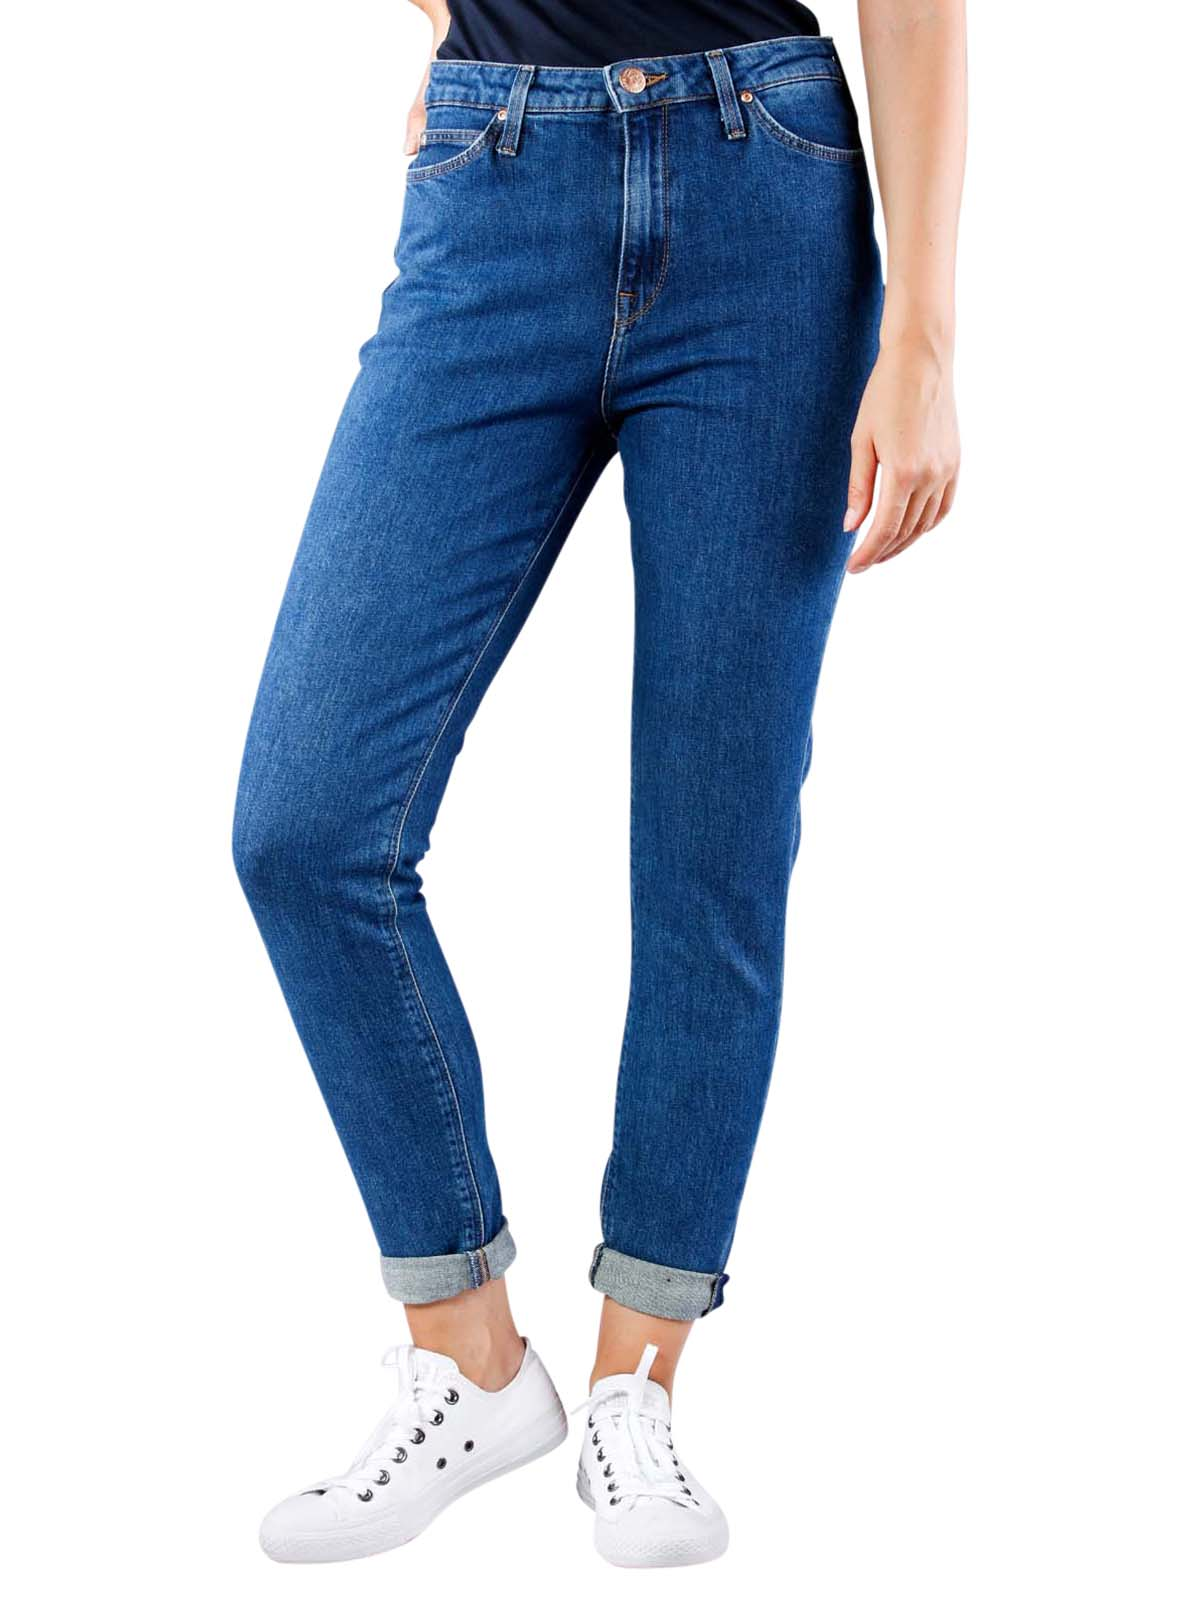 af7ab8028f McJeans.ch - Fast Delivery | Lee Mom Jeans Stretch Tapered acid stone |  Free Shipping - Free Returns